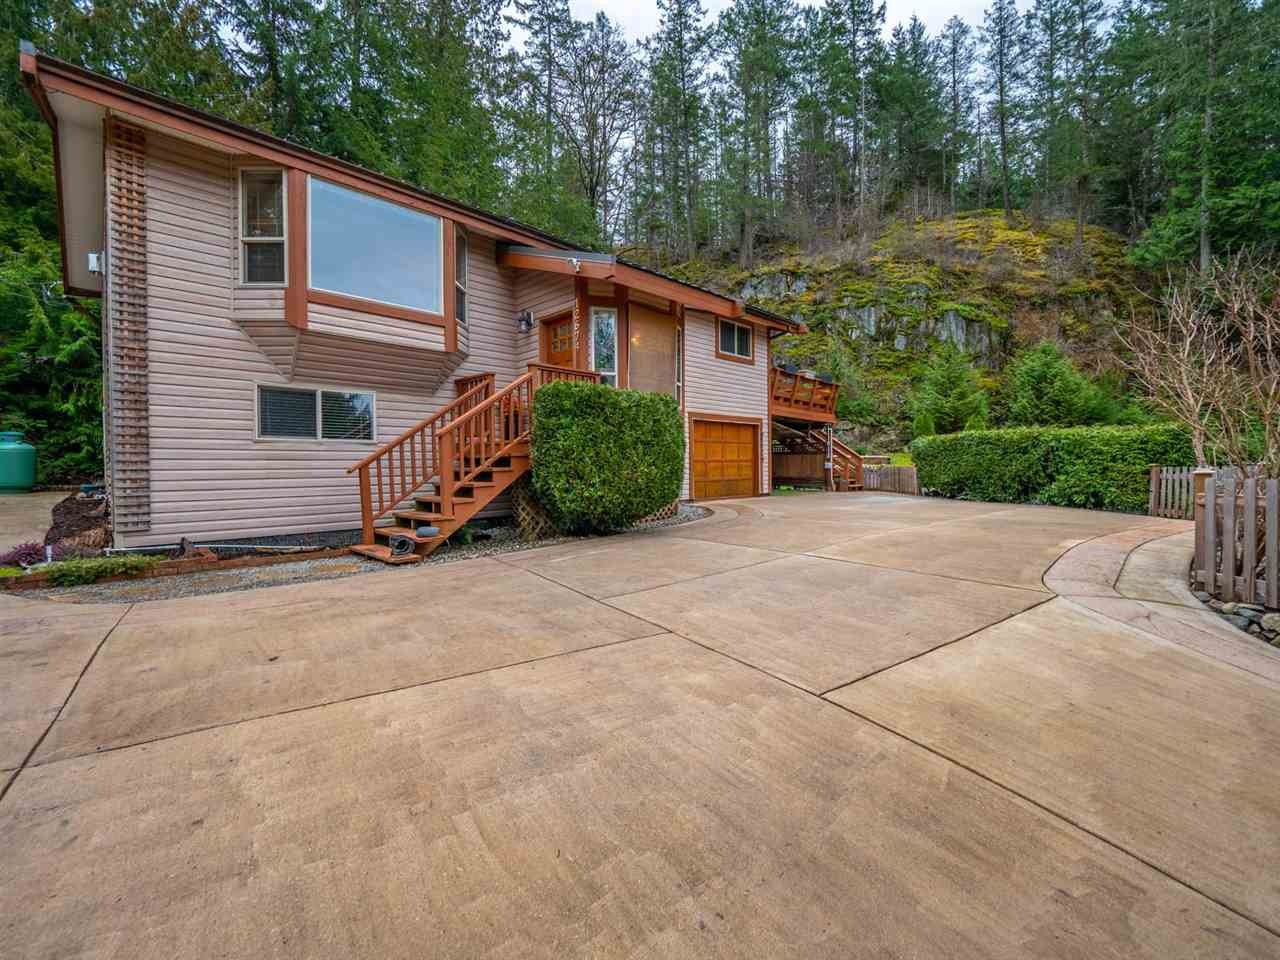 Photo 1: Photos: 12674 MERRILL Crescent in Pender Harbour: Pender Harbour Egmont House for sale (Sunshine Coast)  : MLS®# R2337589